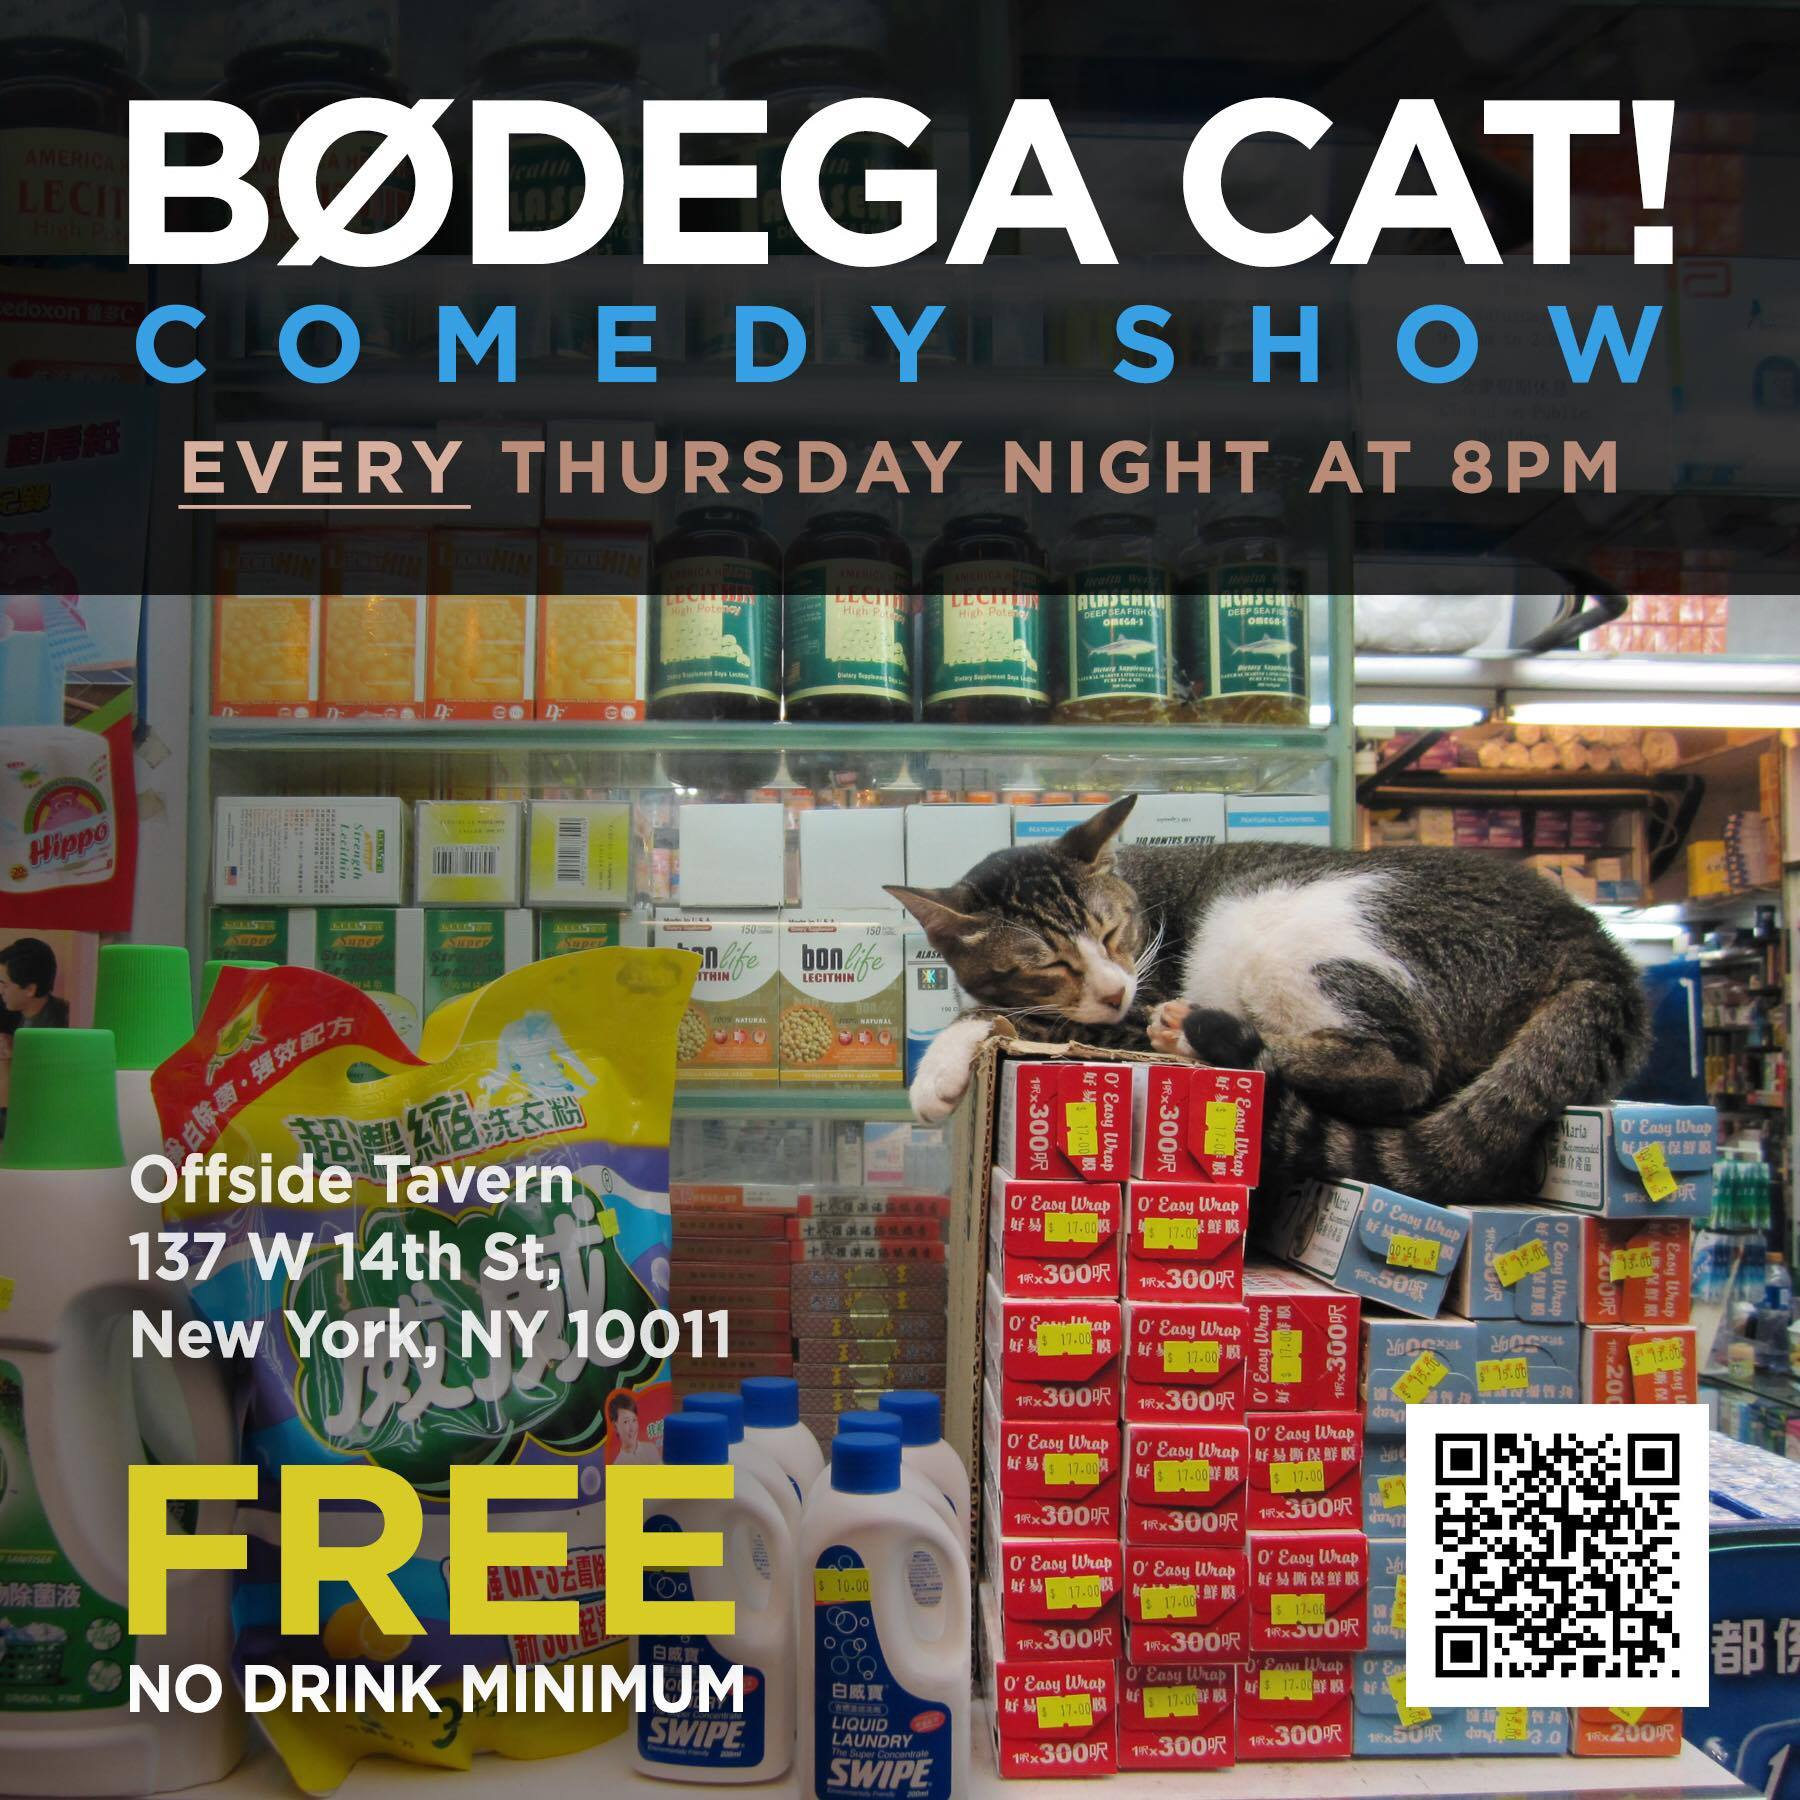 Bodega Cat Comedy Show